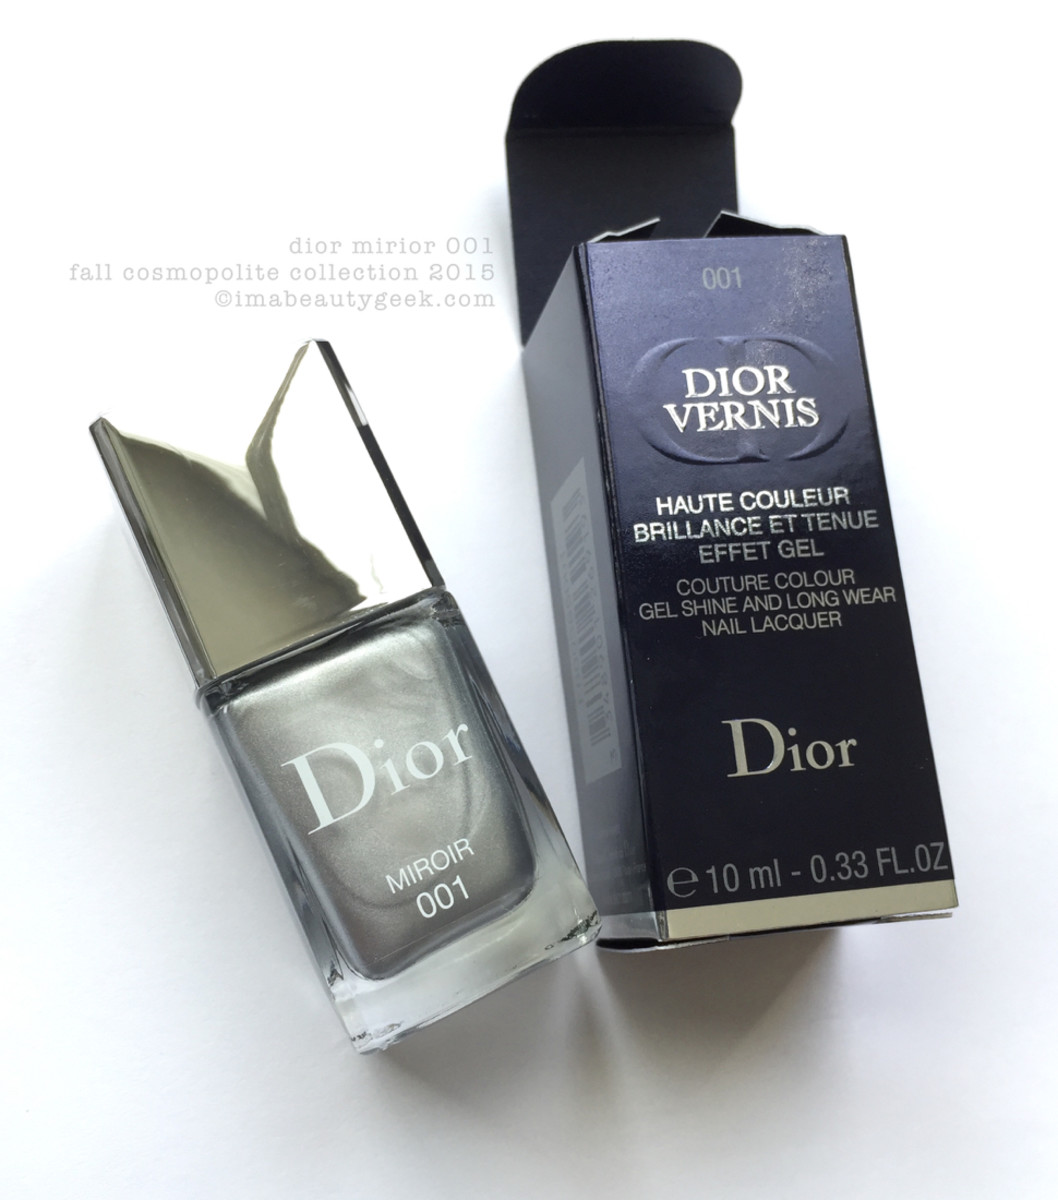 dior miroir 001 swatches review beautygeeks